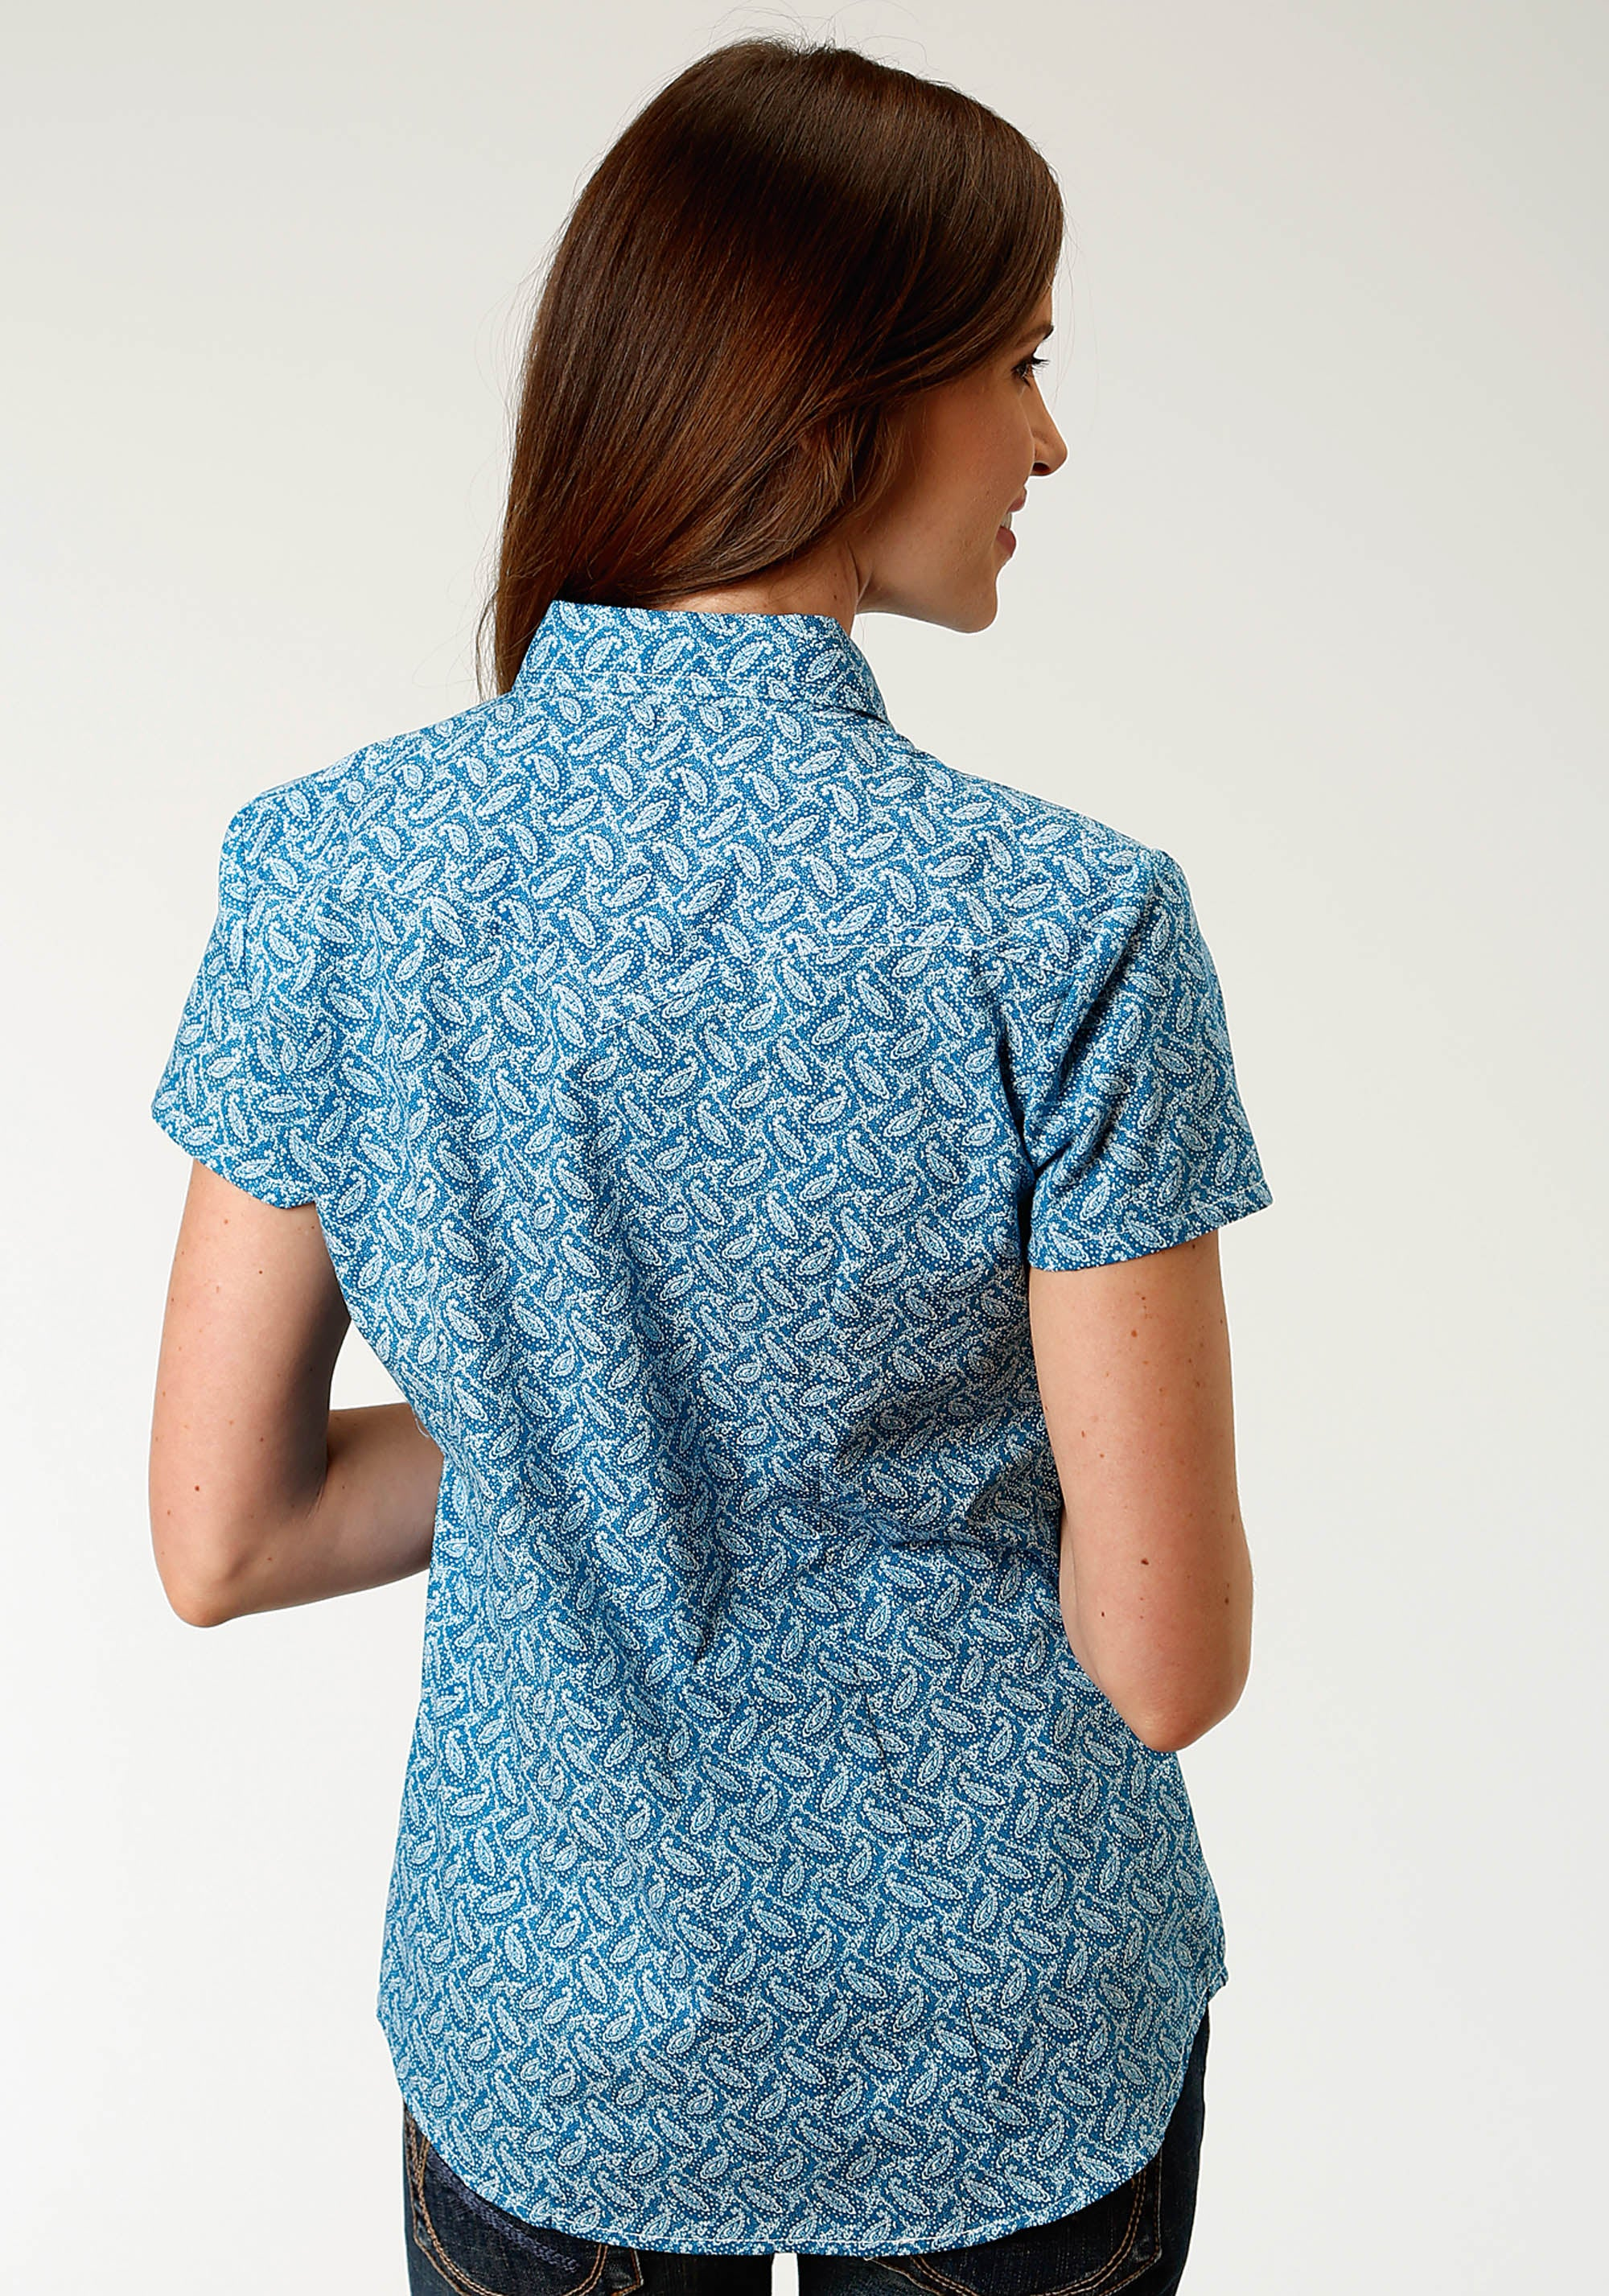 ROPER WOMENS BLUE 2435 VINTAGE DENIM PAISLEY LADIES AMARILLO COLLECTION- INDIGO BLUES SHORT SLEEVE